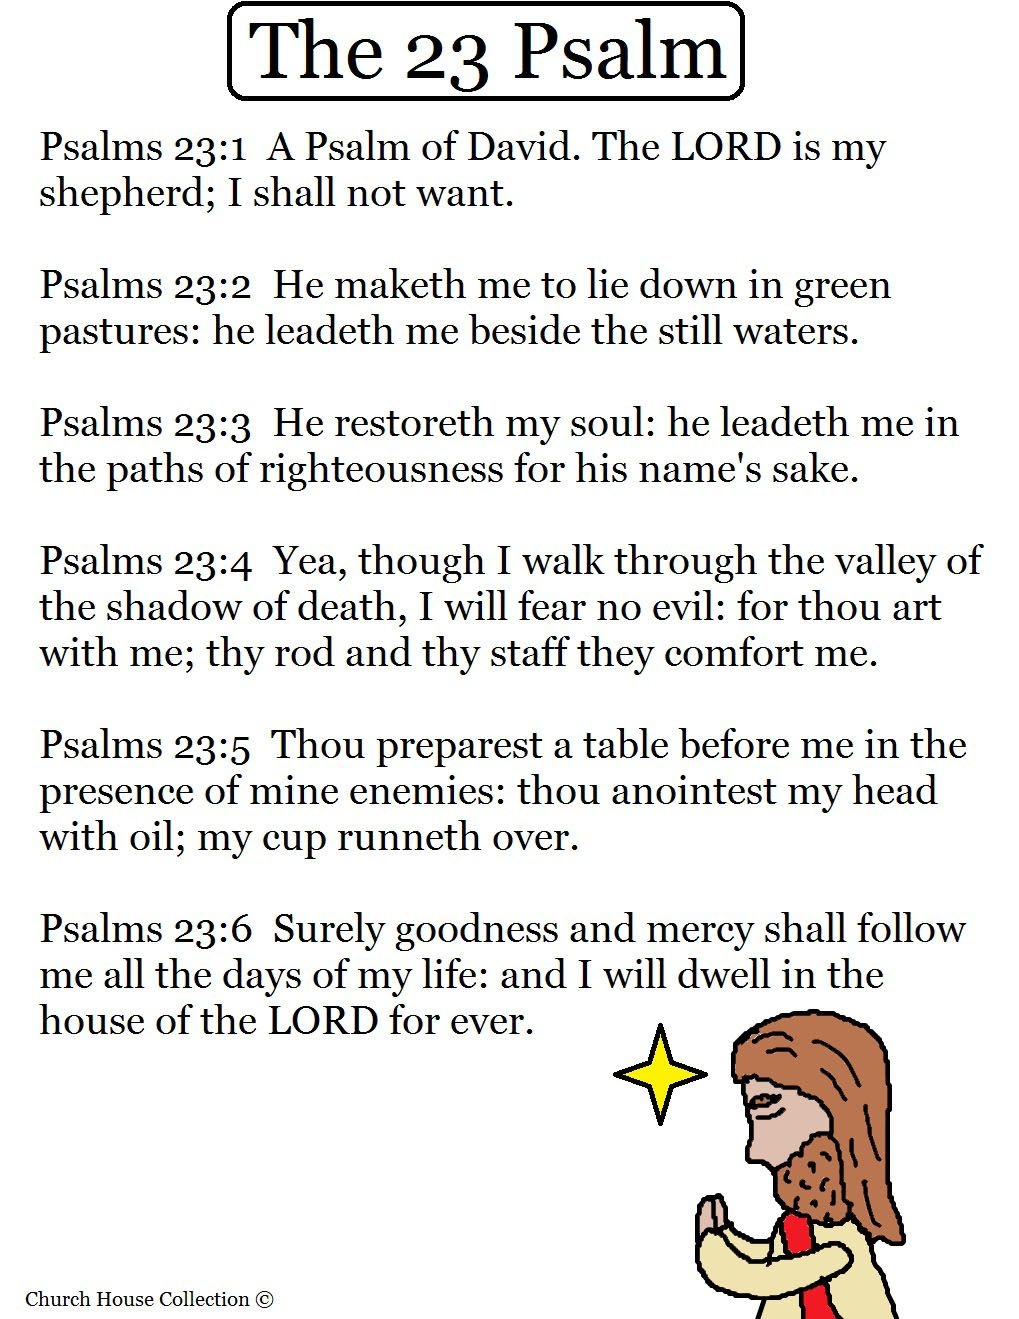 Life of David in the Psalms - Bible Study Tools